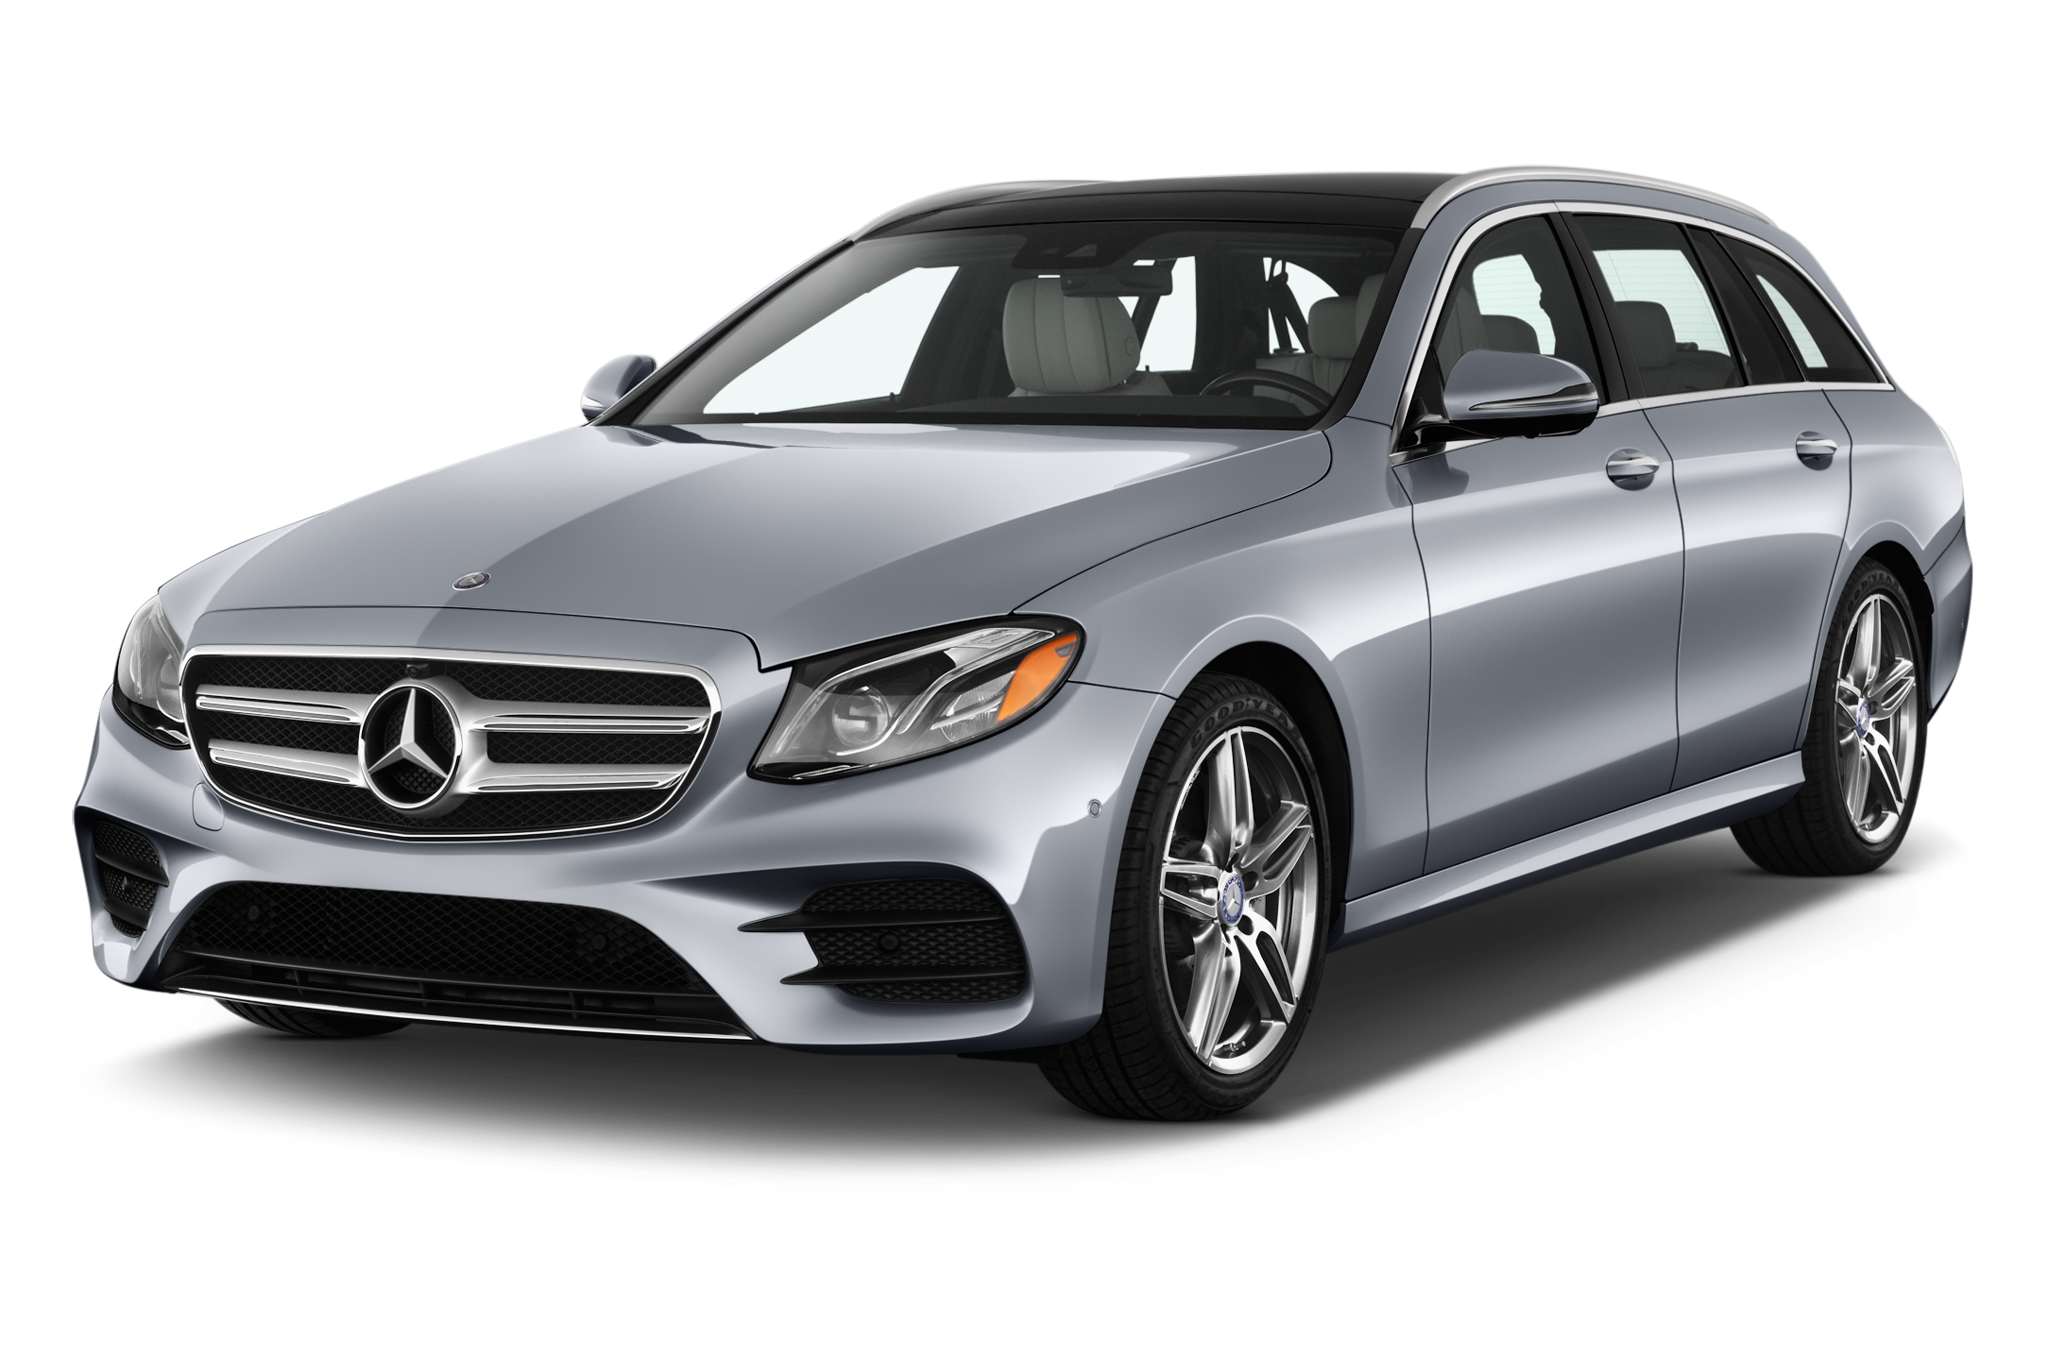 2018 mercedes benz e class amg e63 s 4matic wagon for Mercedes benz e63 amg price